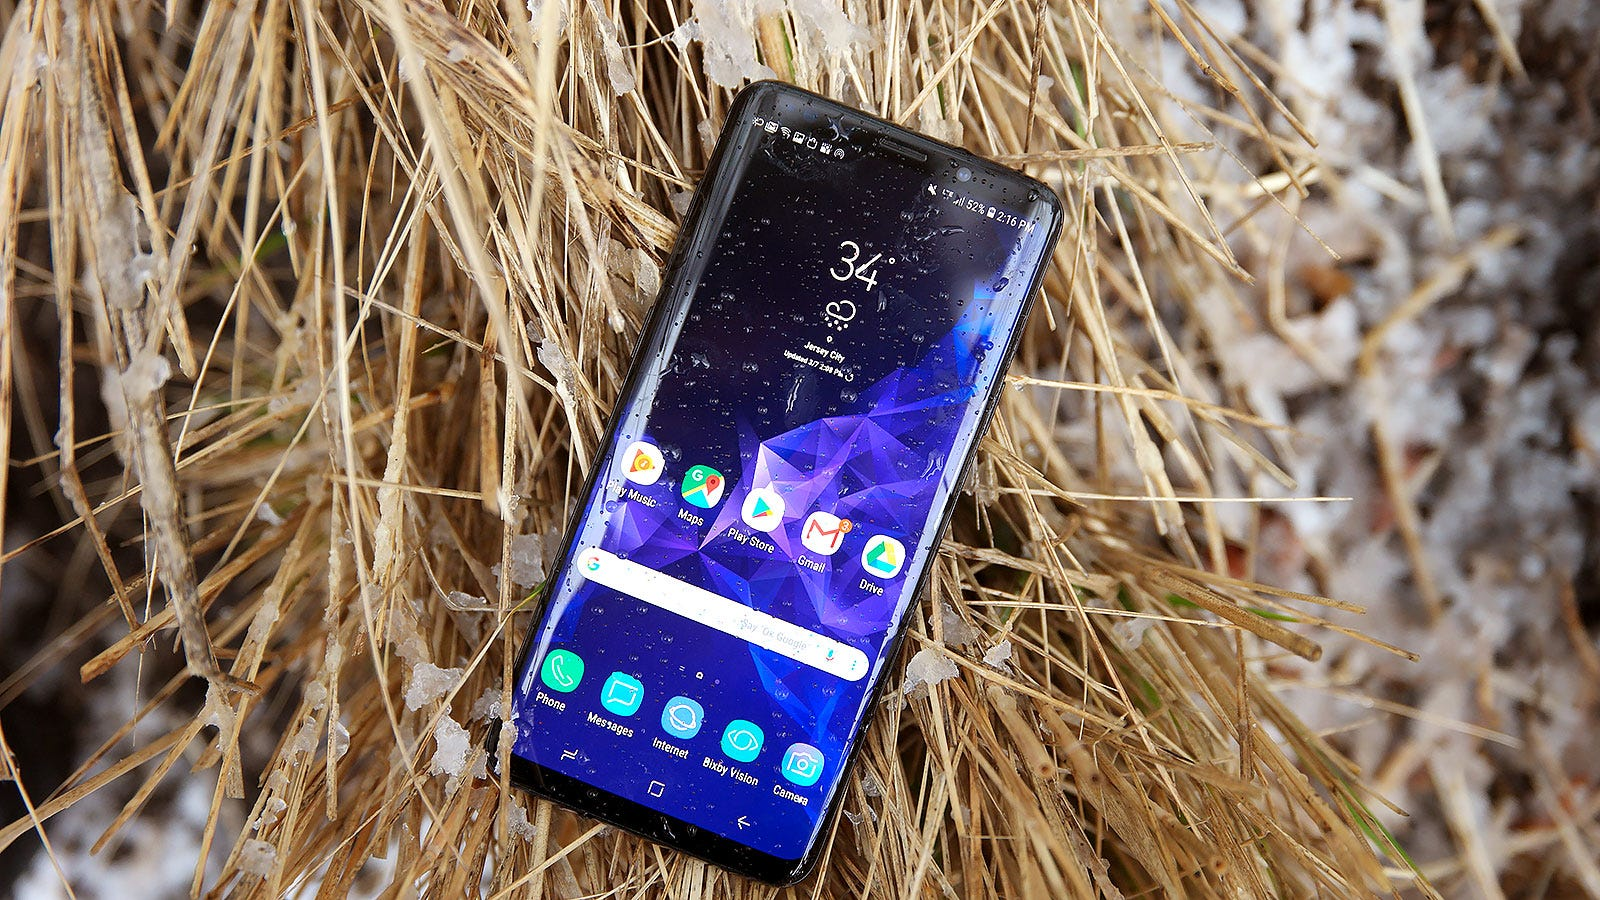 Deals: $360 Off These Samsung S9 Plans With Telstra